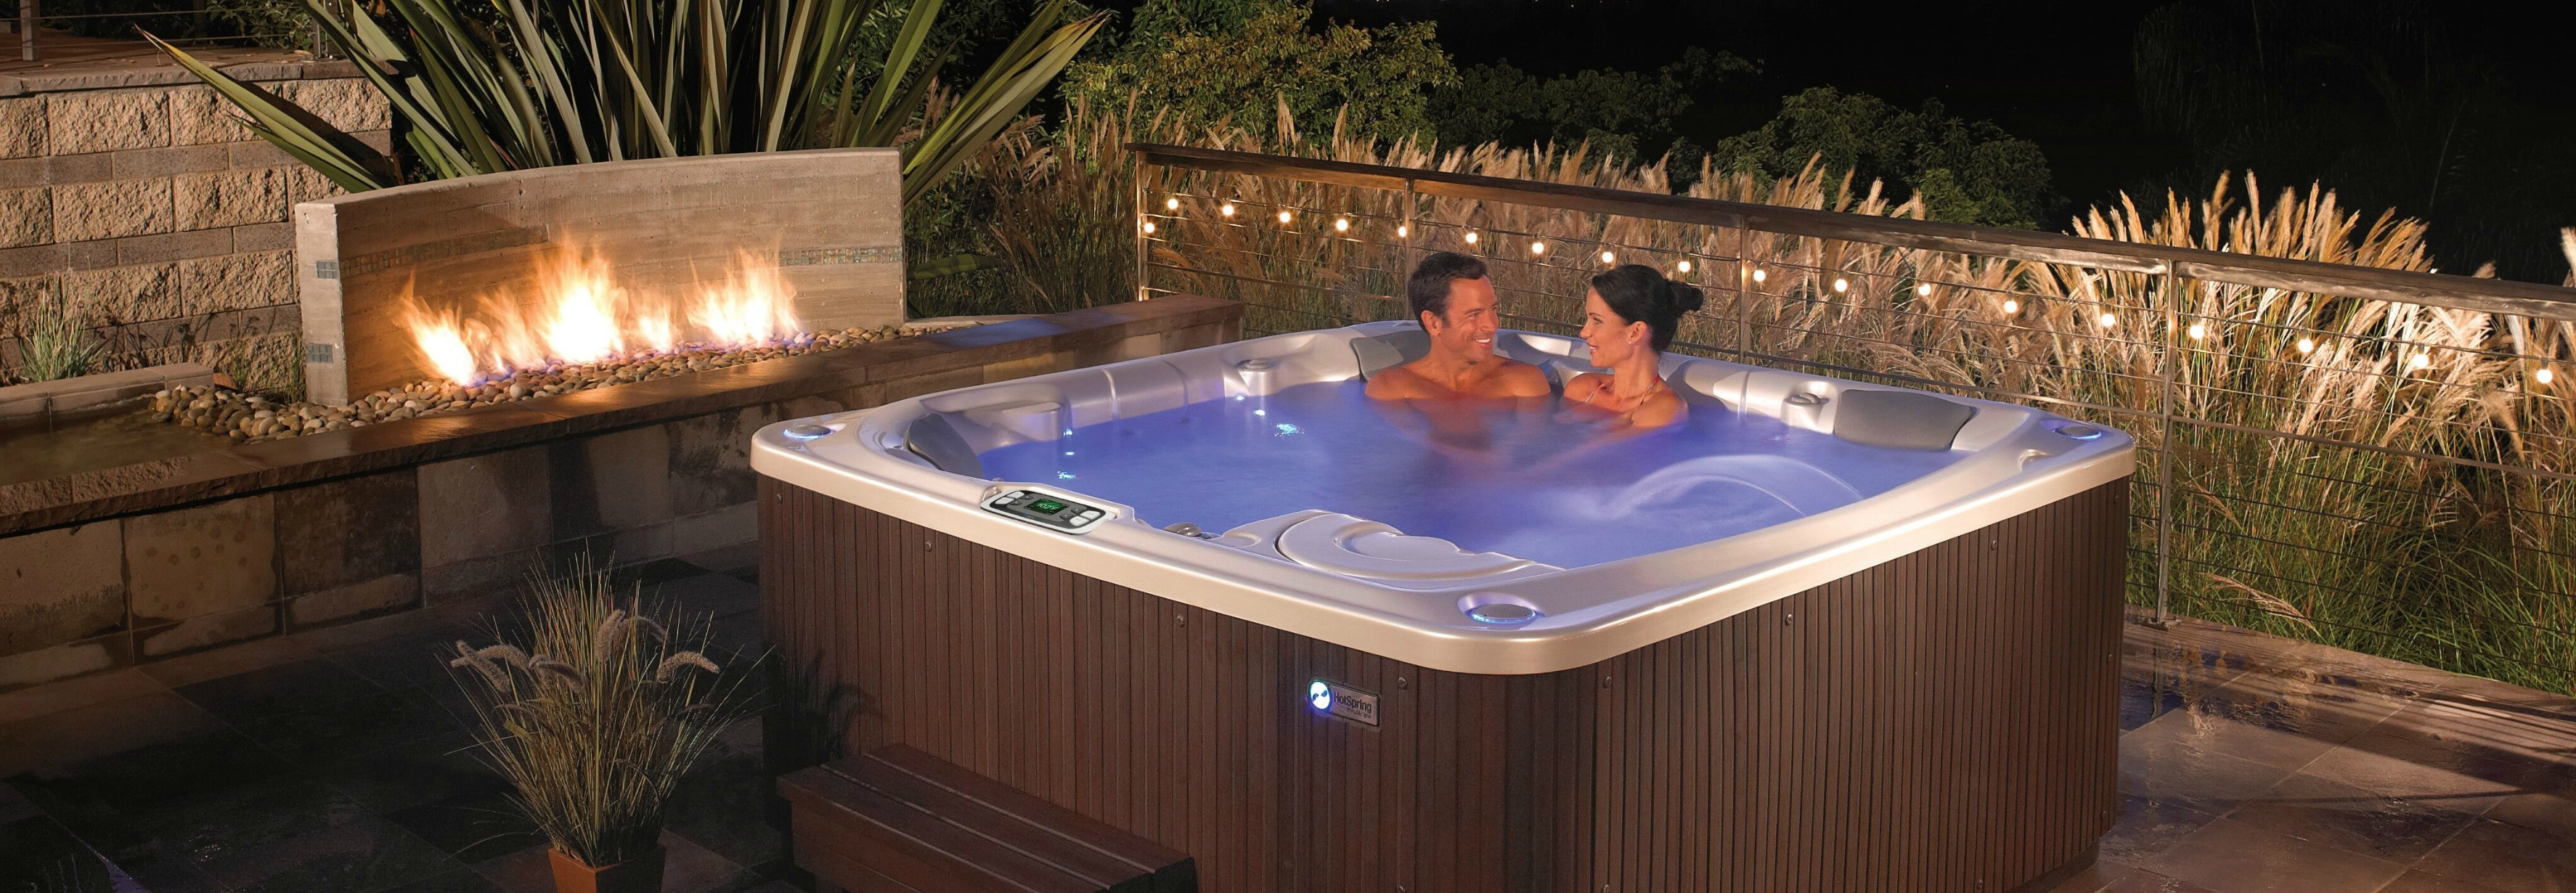 What\'s the Difference Between a Jacuzzi and a Hot Tub? - Backyard Oasis